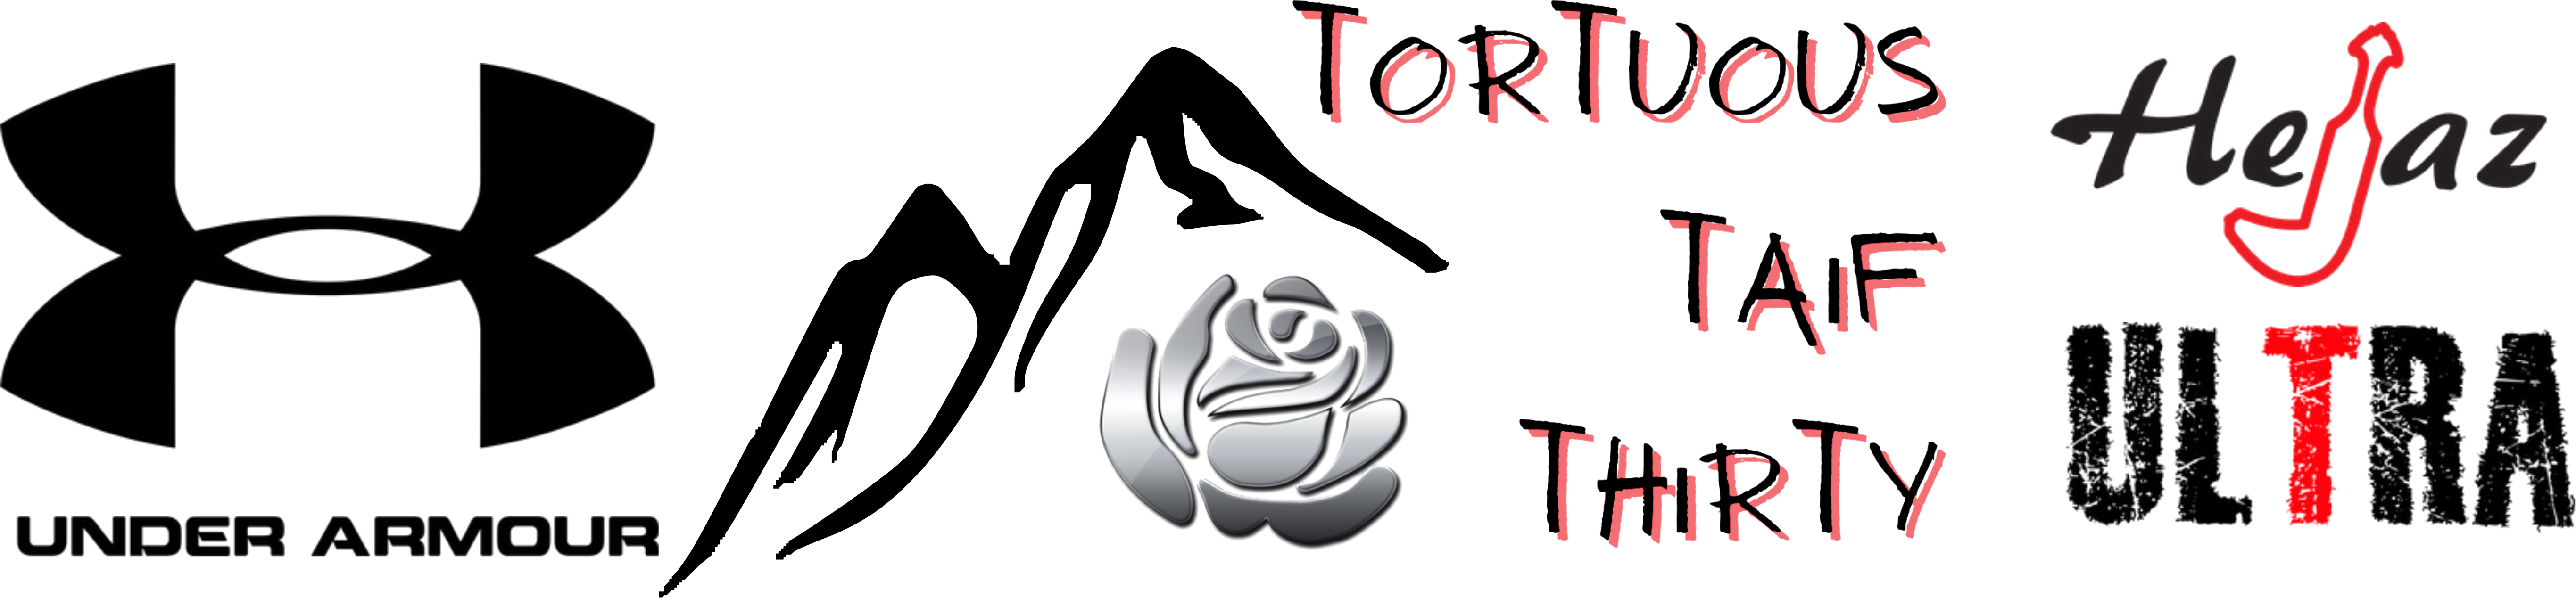 Tortuous Taif Thirty